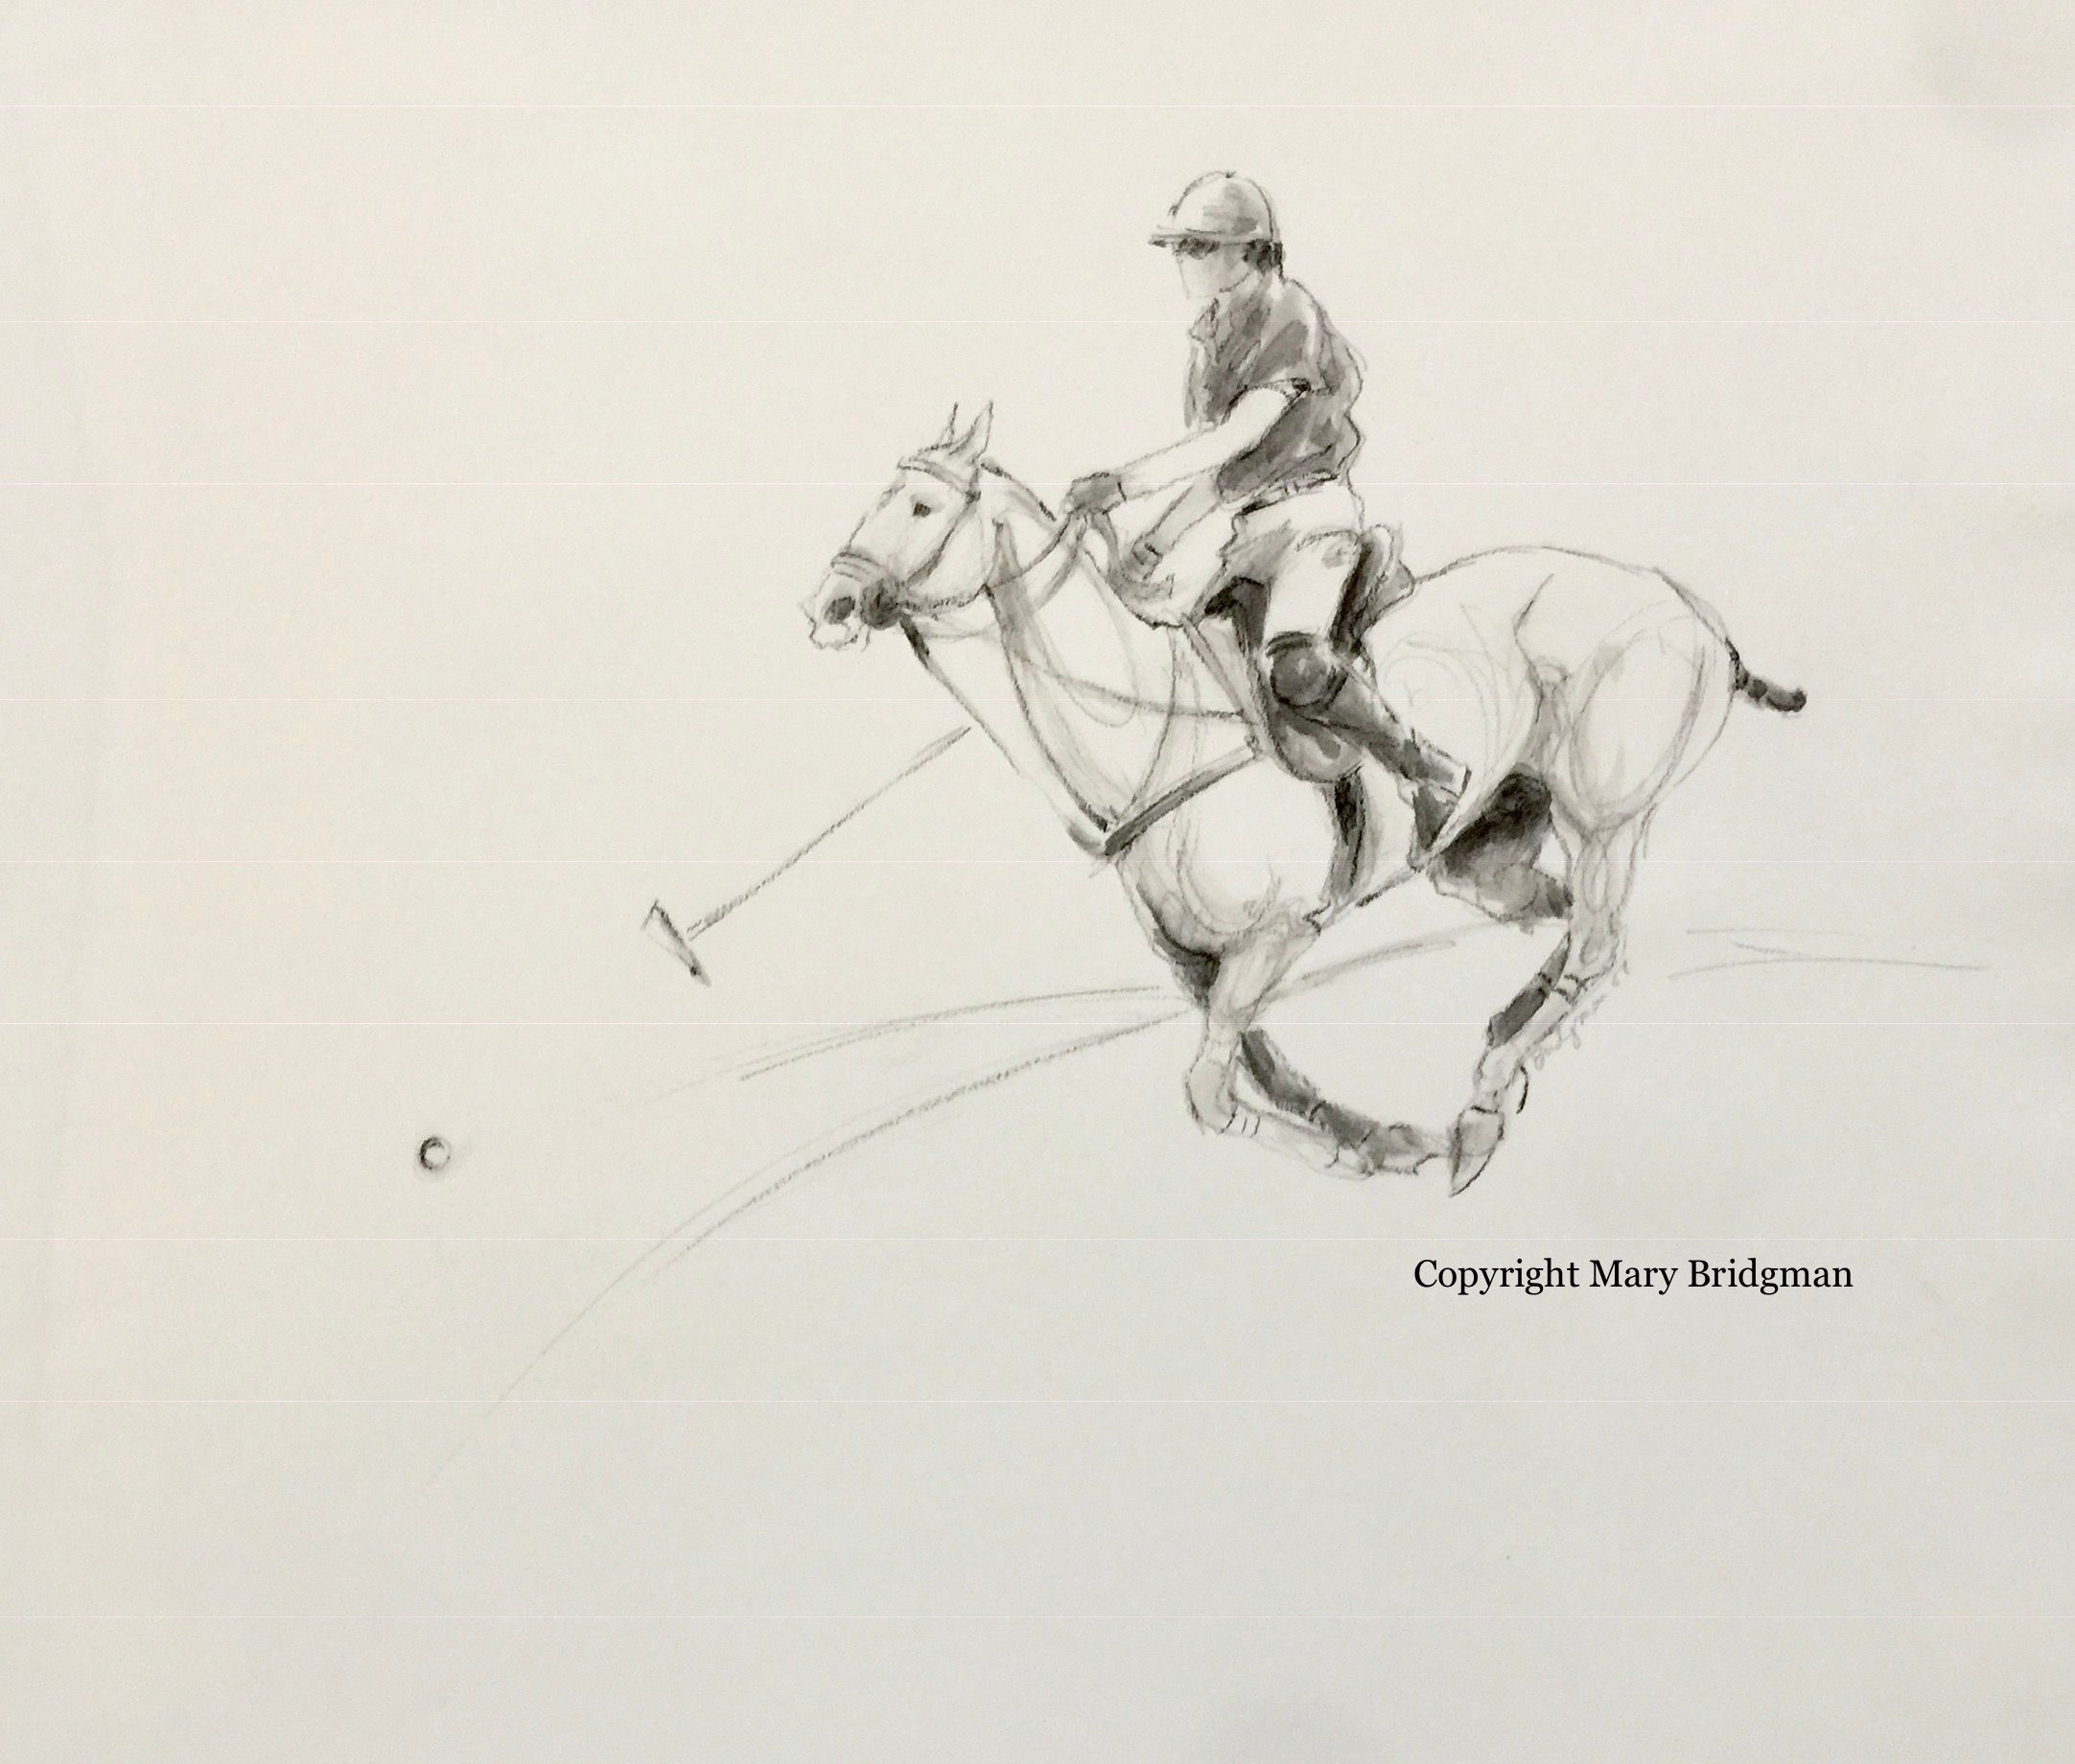 Polo Player chasing the Ball